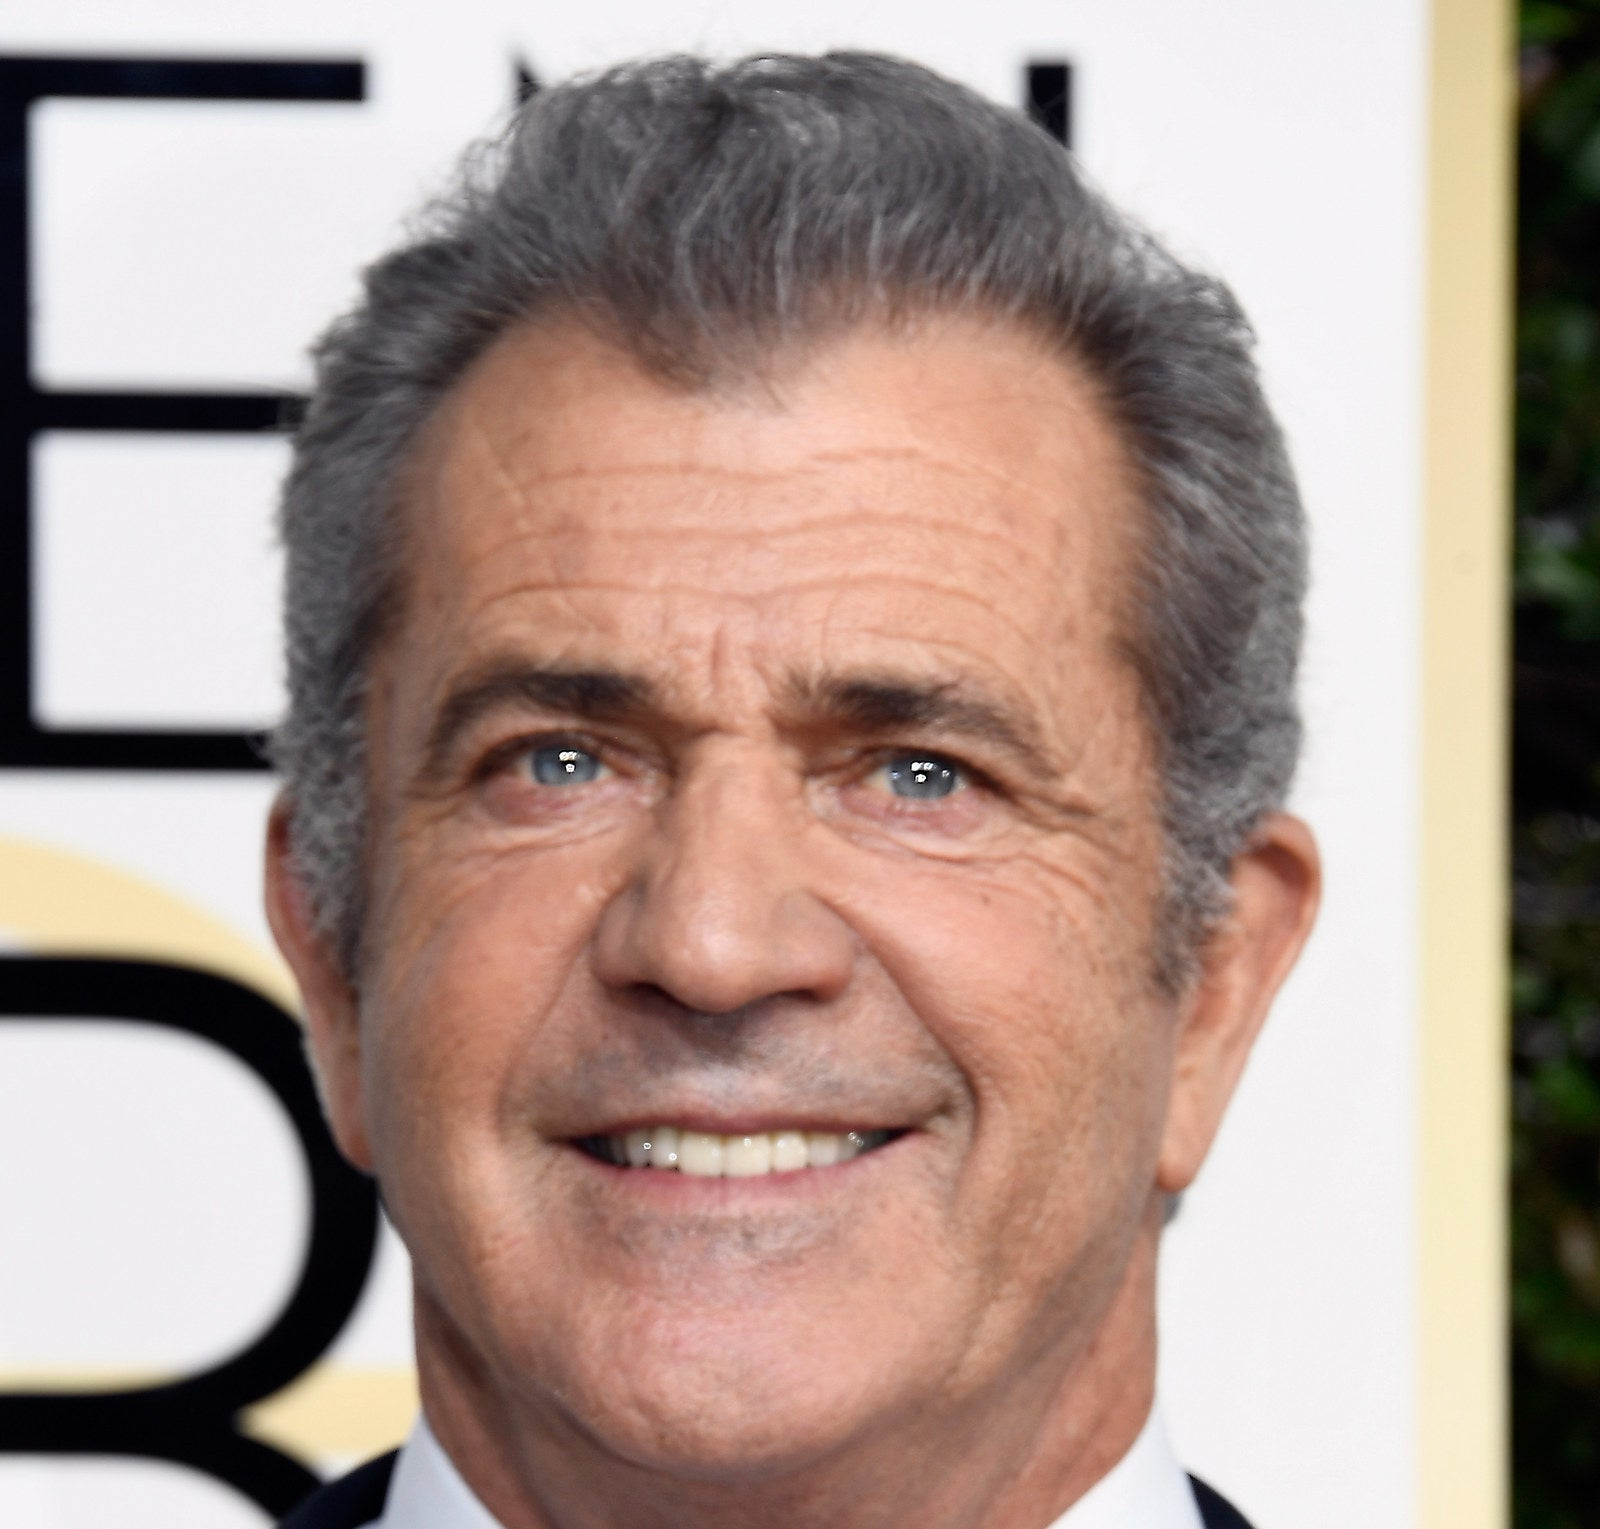 Mel Gibson at the Golden Globe Awards earlier this month.